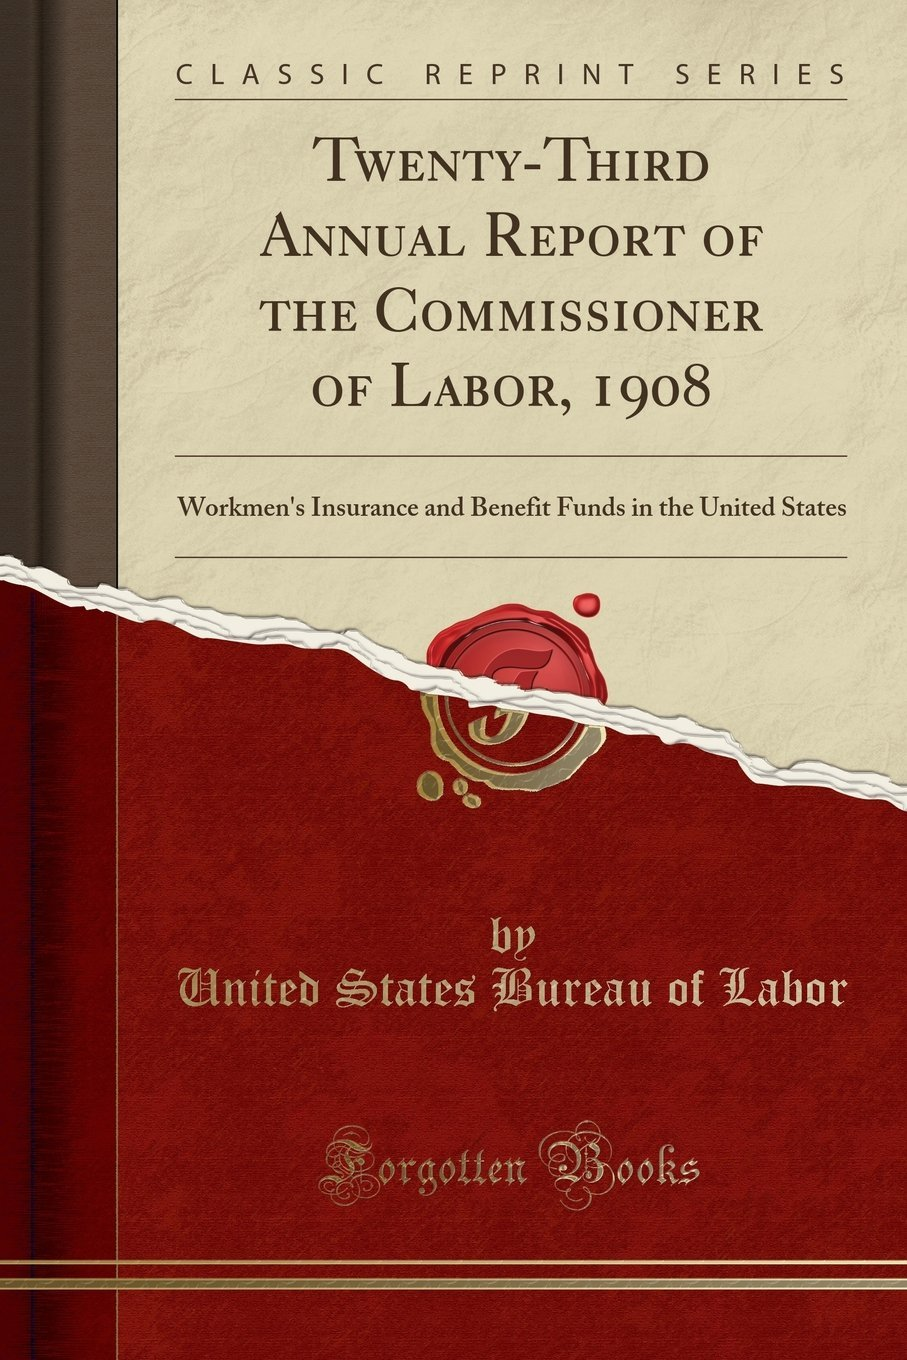 Download Twenty-Third Annual Report of the Commissioner of Labor, 1908: Workmen's Insurance and Benefit Funds in the United States (Classic Reprint) pdf epub